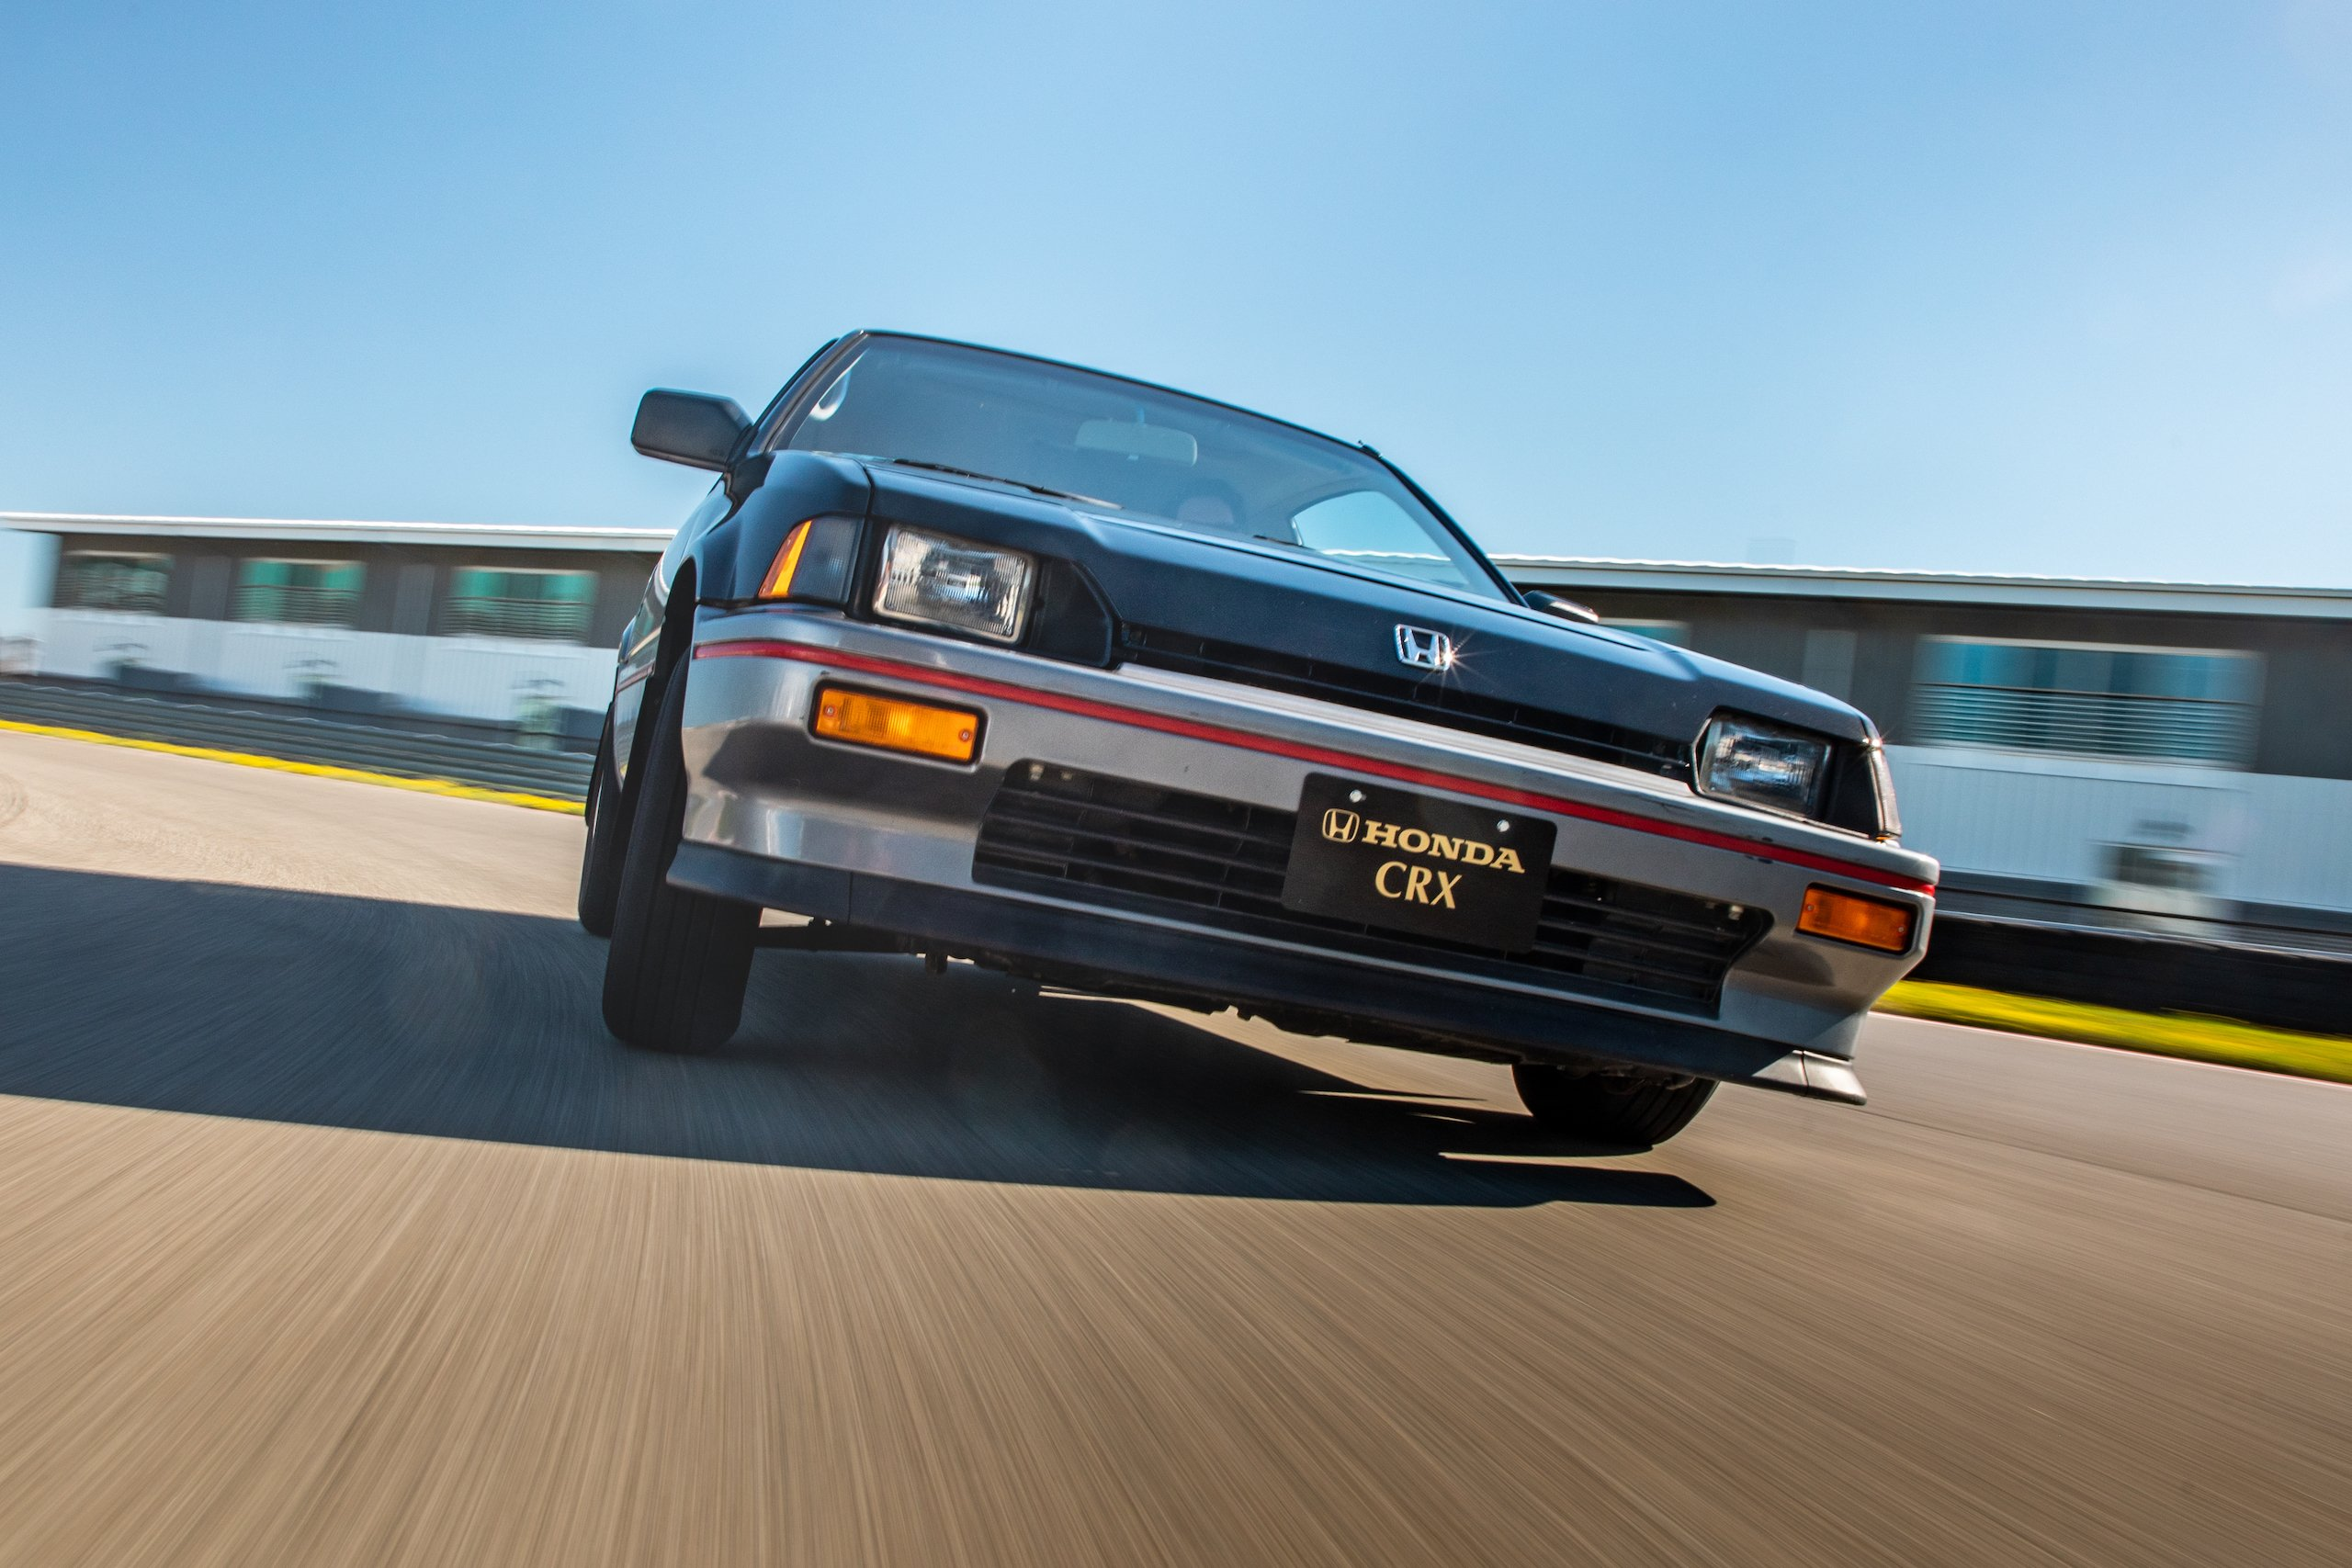 CRX Civic The Newest Classic Honda Si Meets an